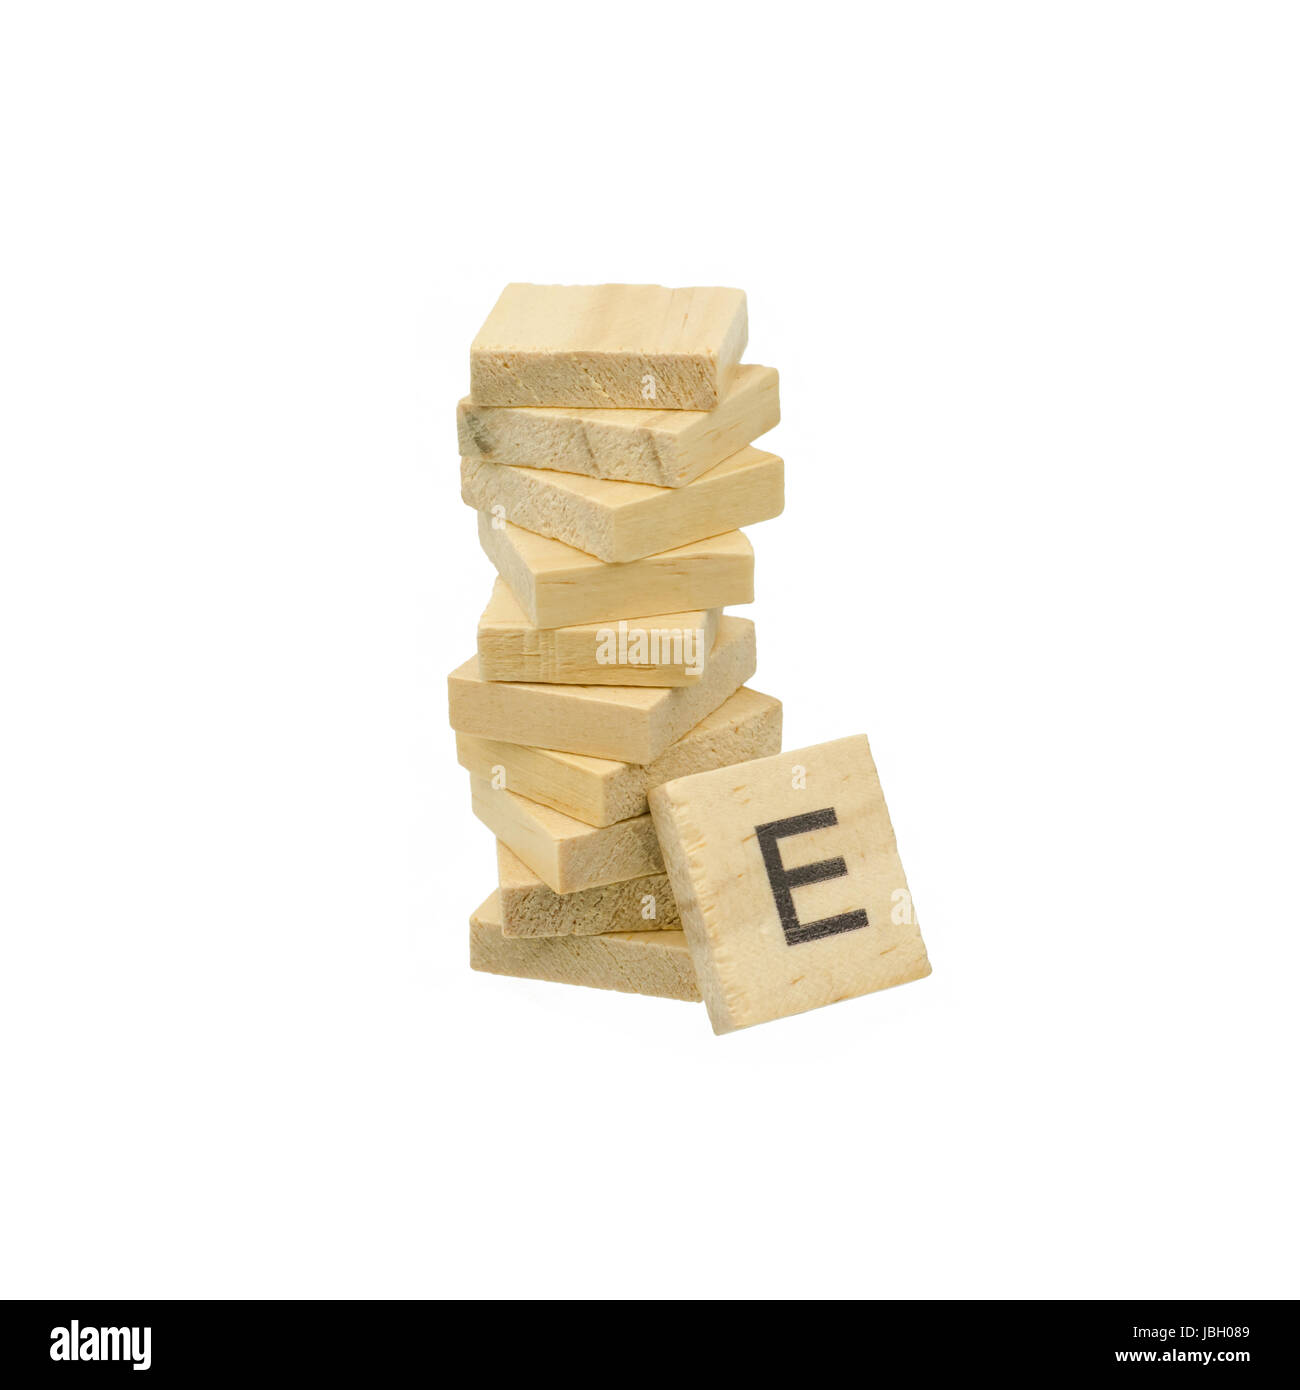 Text wooden blocks isolated on white background - Stock Image